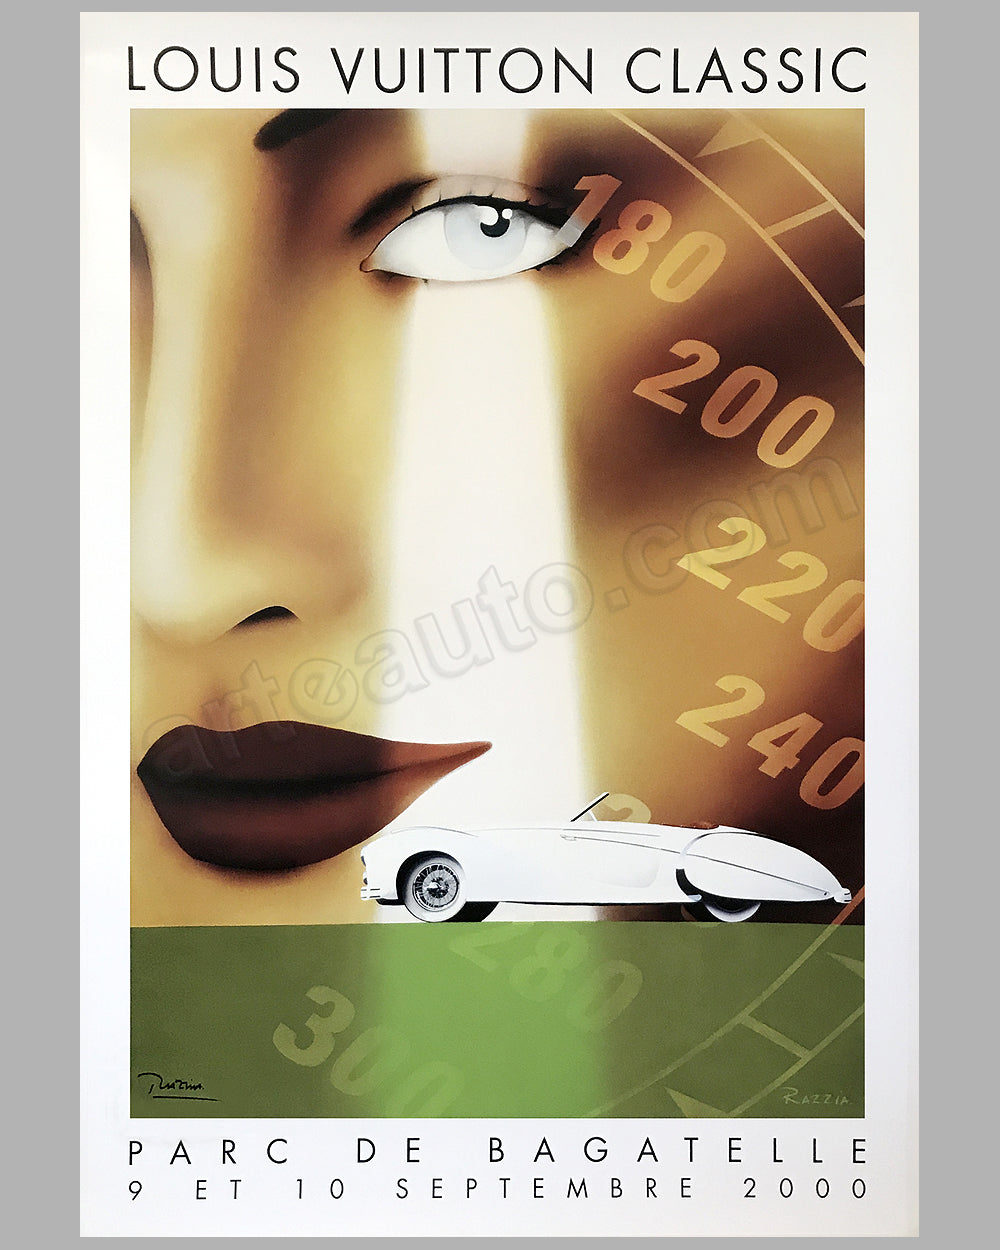 Parc de Bagatelle Concours d' Elegance 2000 in Paris large poster by Razzia